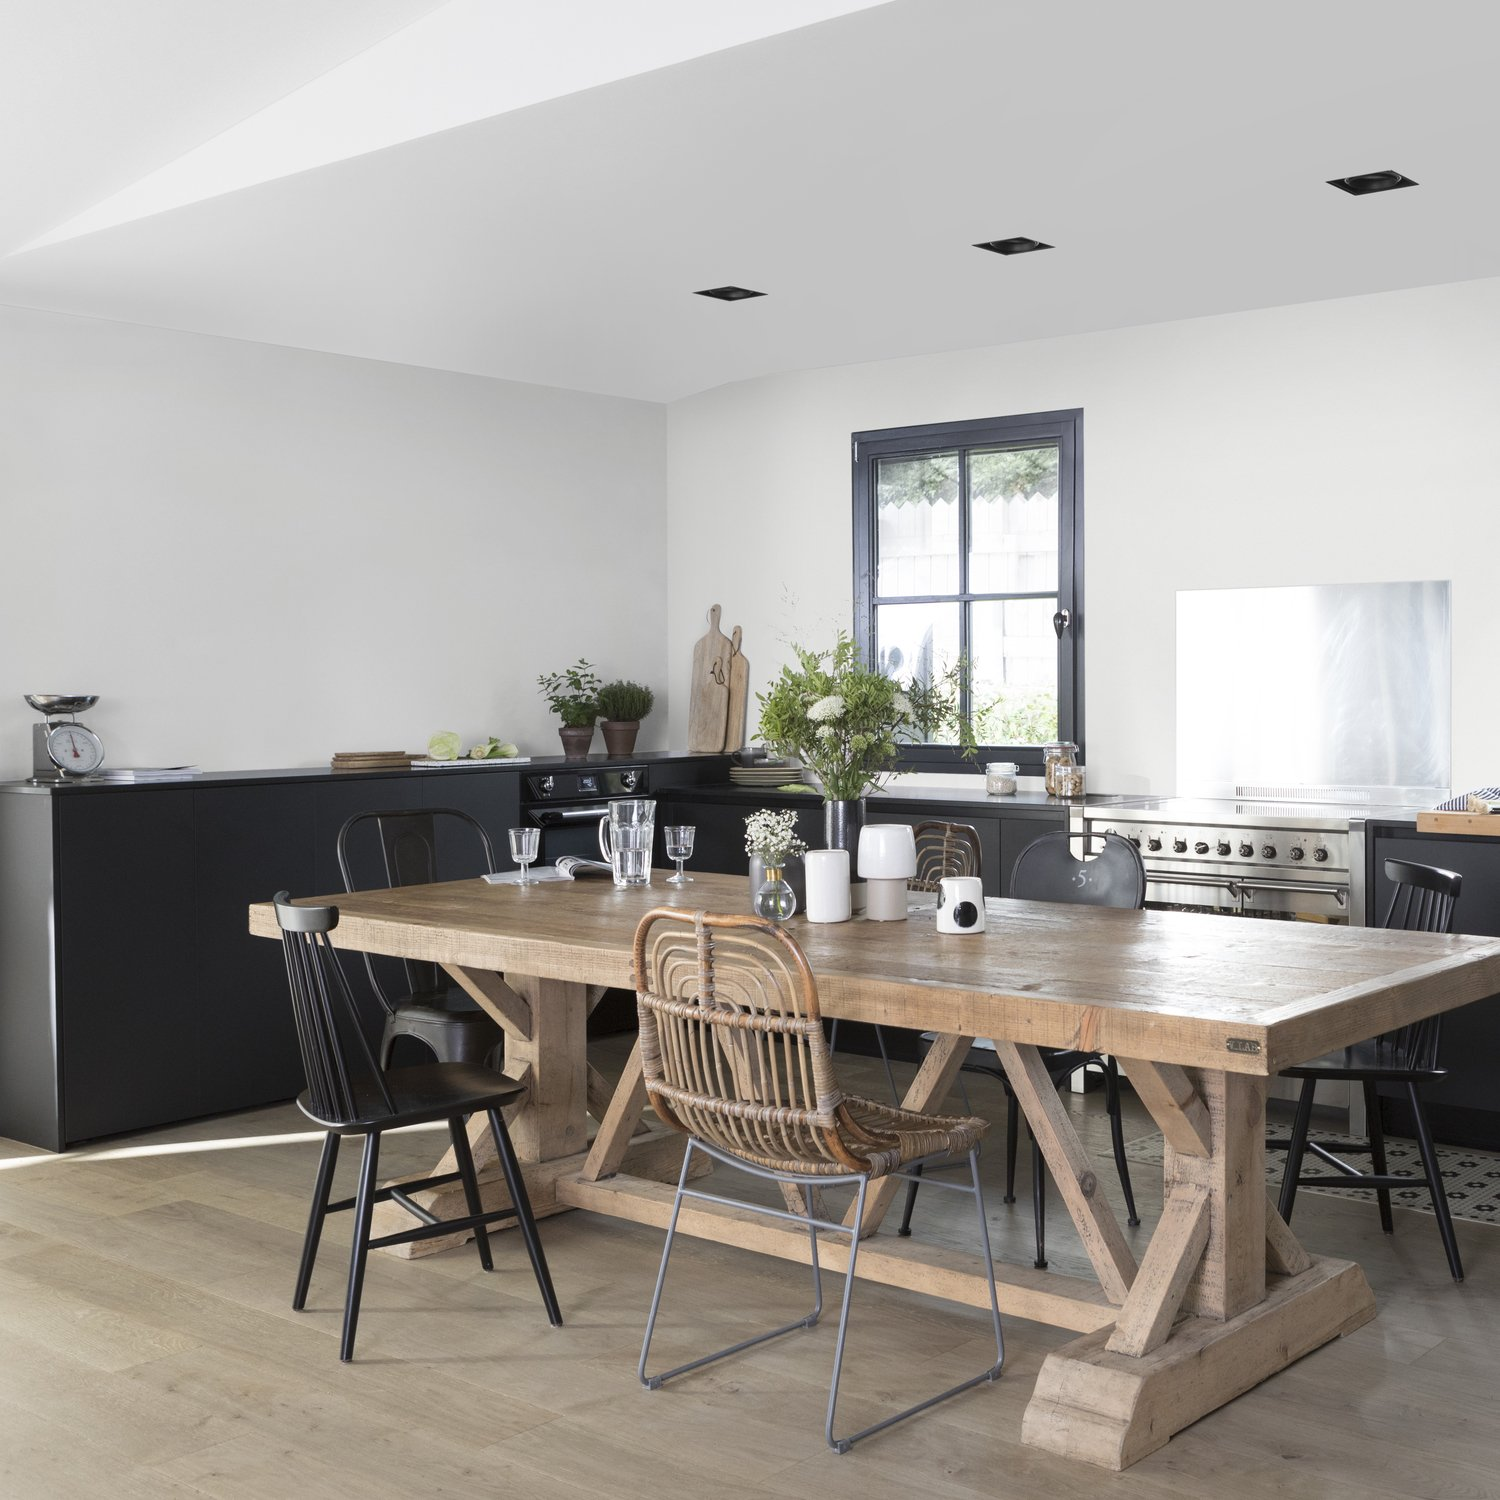 Une Salle A Manger Grise Au Style Campagne Leroy Merlin